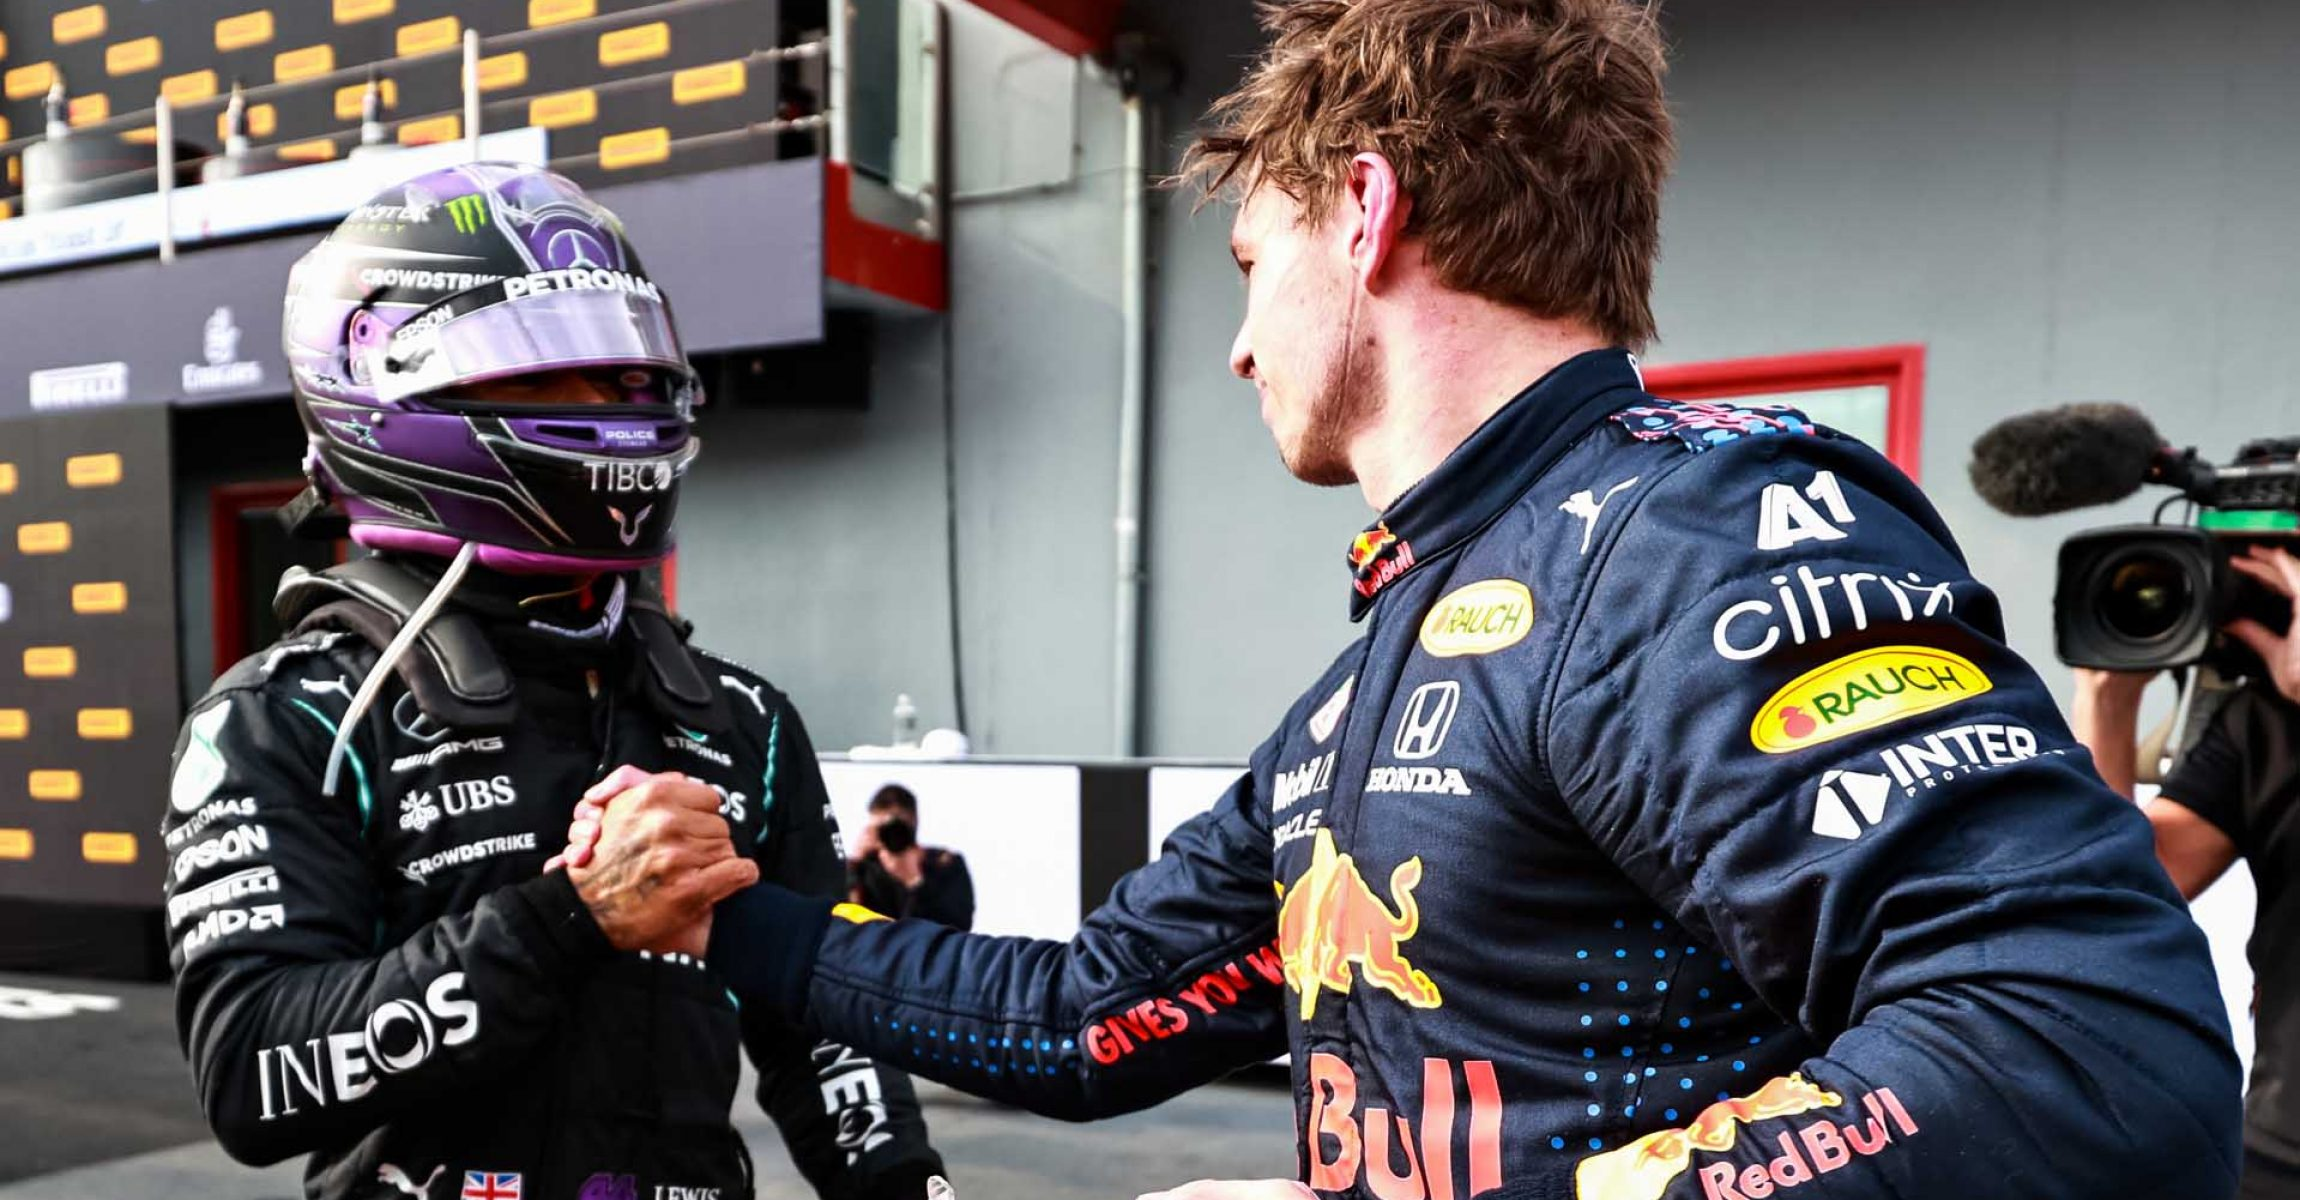 IMOLA, ITALY - APRIL 18: Race winner Max Verstappen of Netherlands and Red Bull Racing and second placed Lewis Hamilton of Great Britain and Mercedes GP shake hands in parc ferme during the F1 Grand Prix of Emilia Romagna at Autodromo Enzo e Dino Ferrari on April 18, 2021 in Imola, Italy. (Photo by Mark Thompson/Getty Images)